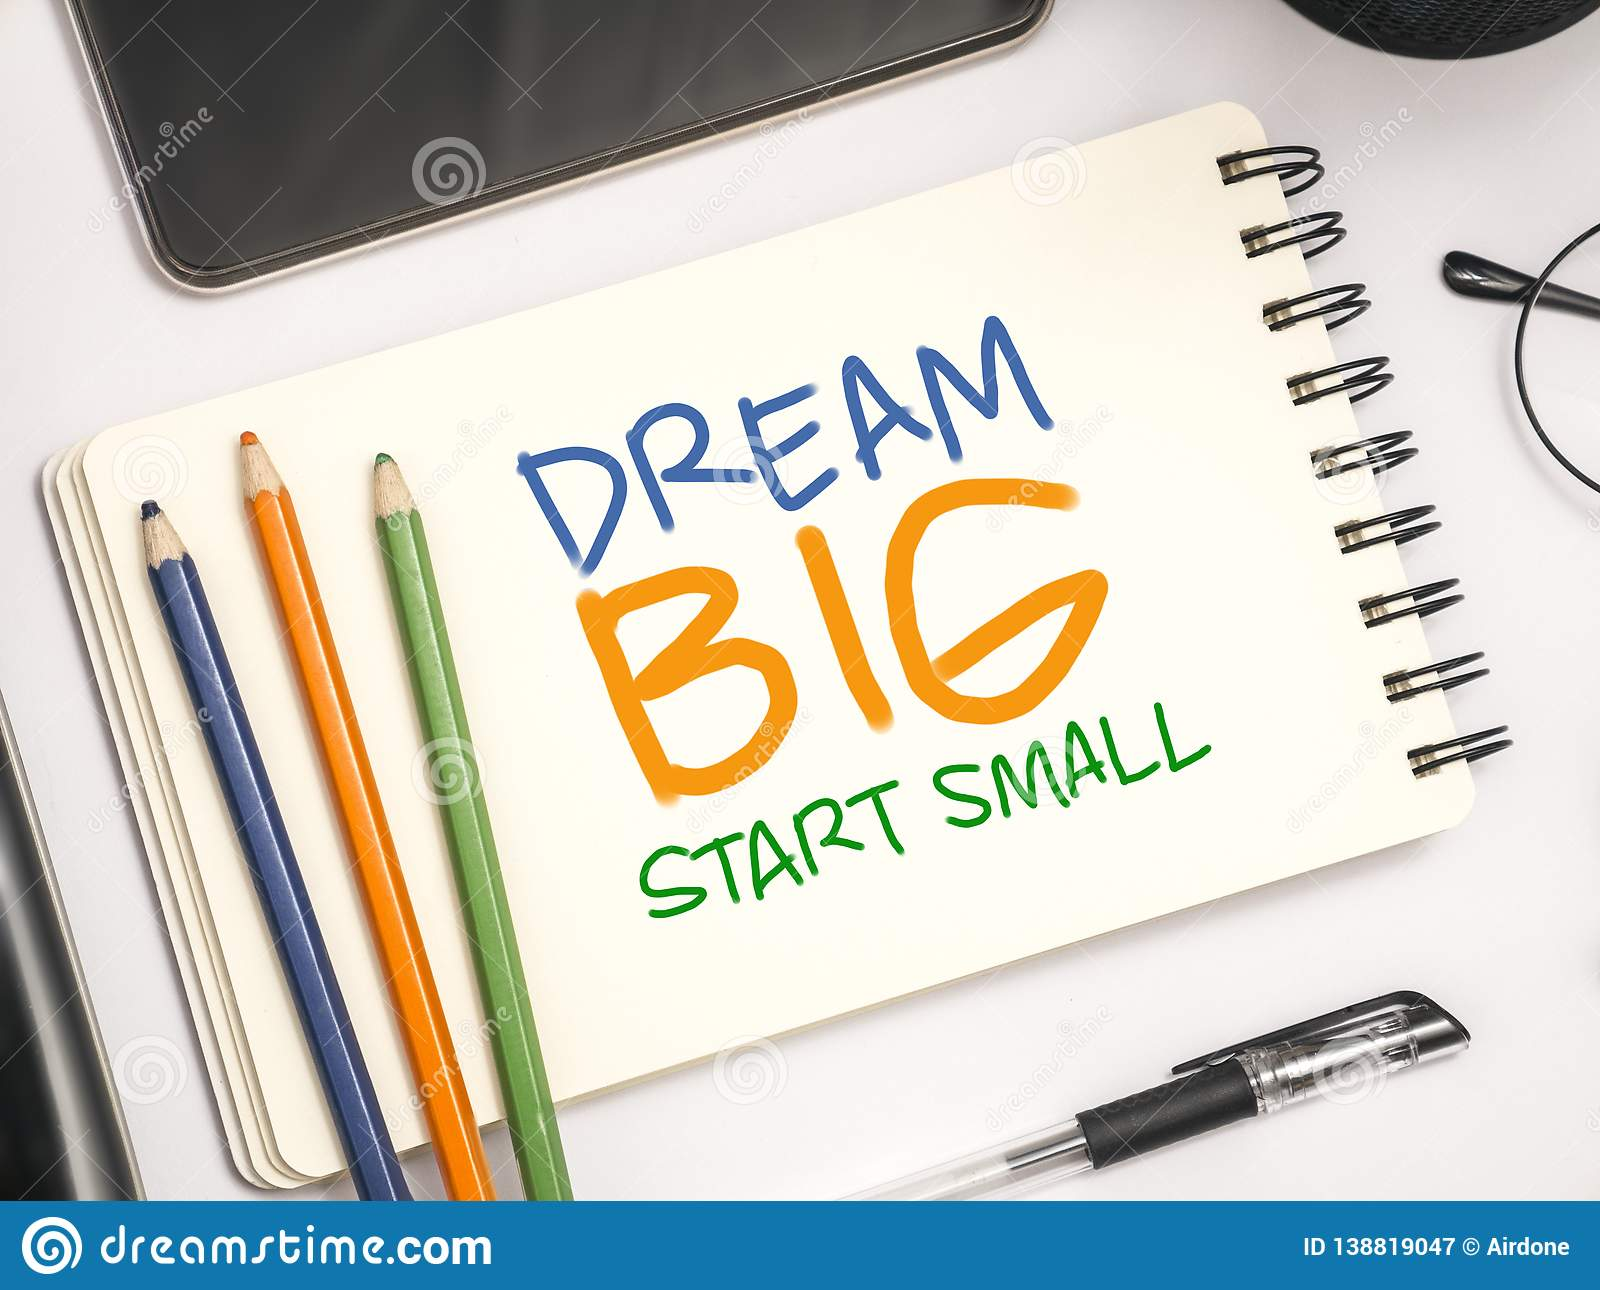 Dream Big Start Small, Motivational Words Quotes Concept